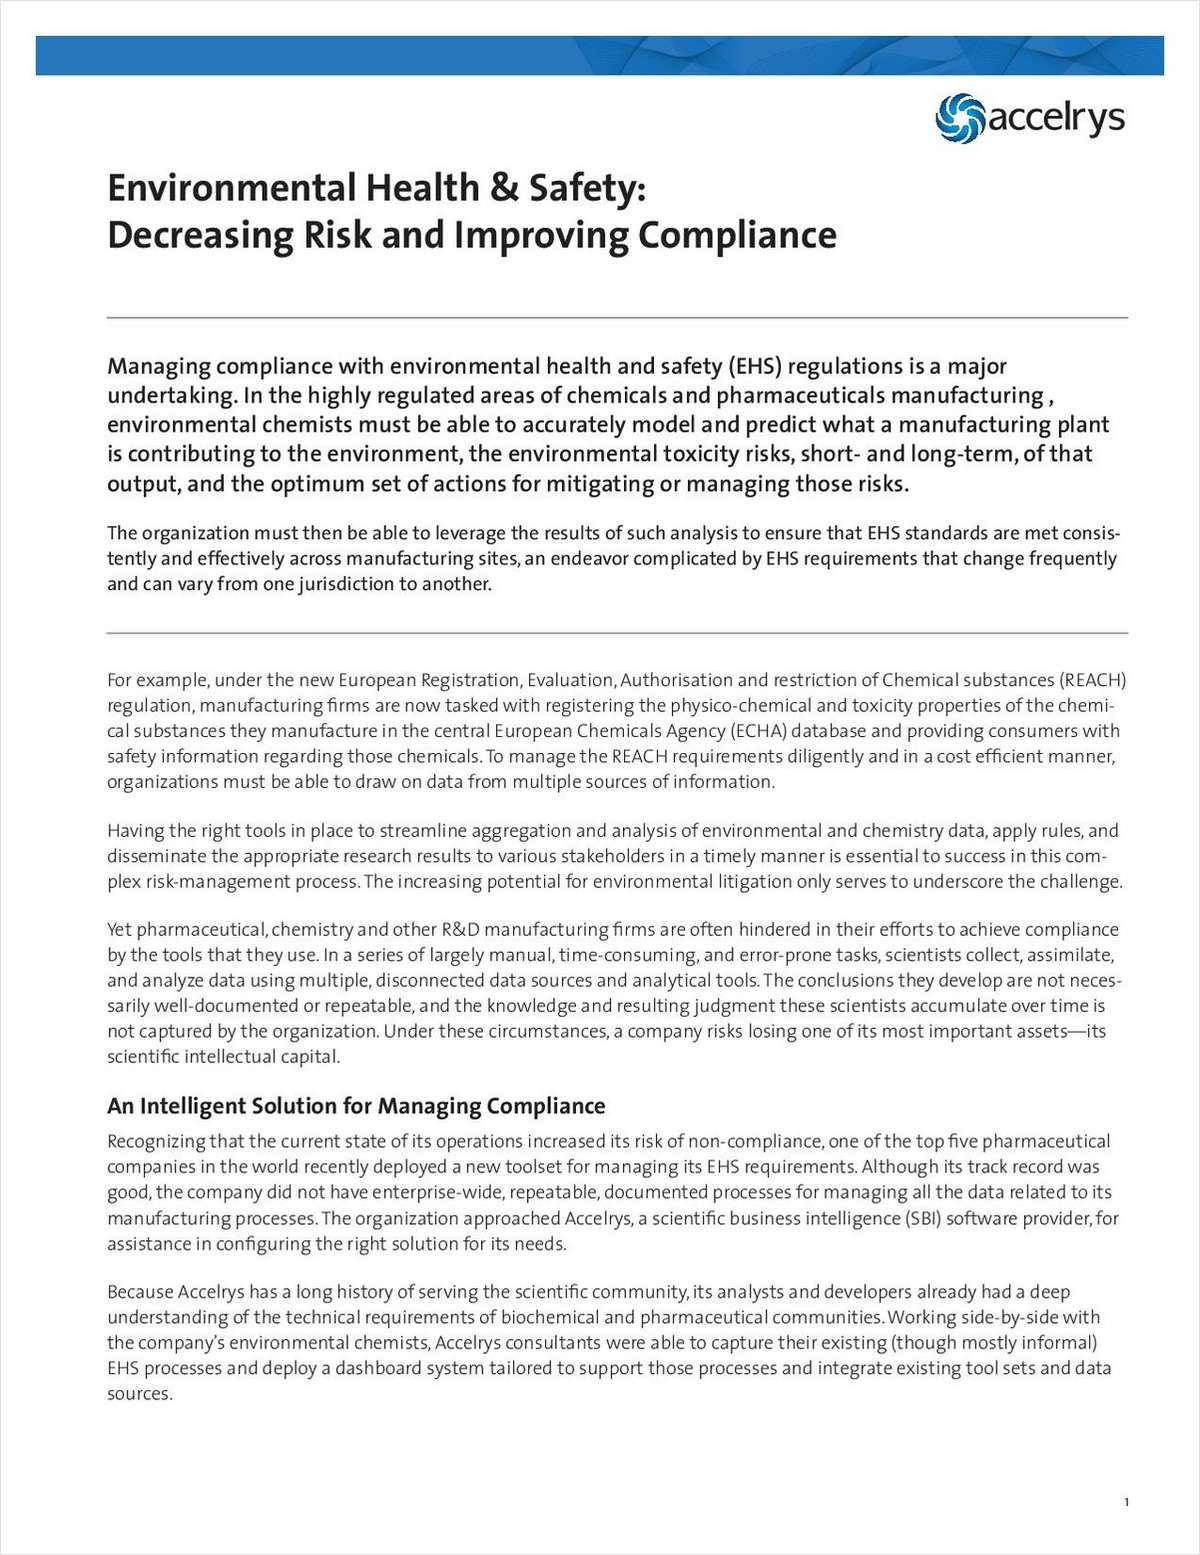 Environmental Health & Safety: Decreasing Risk and Improving Compliance